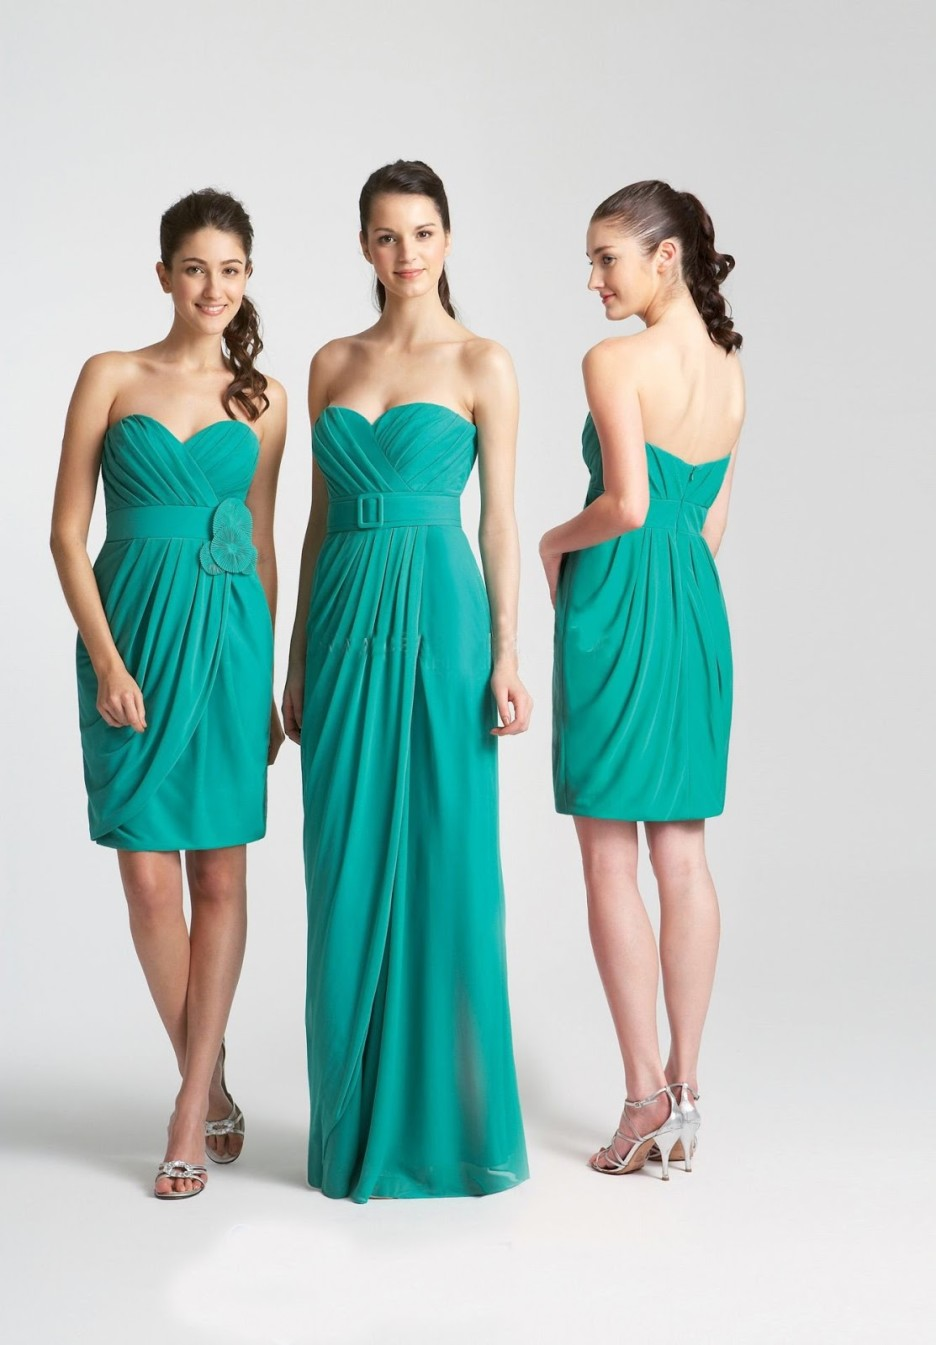 26 Best Summer Bridesmaid Dresses 2015/16